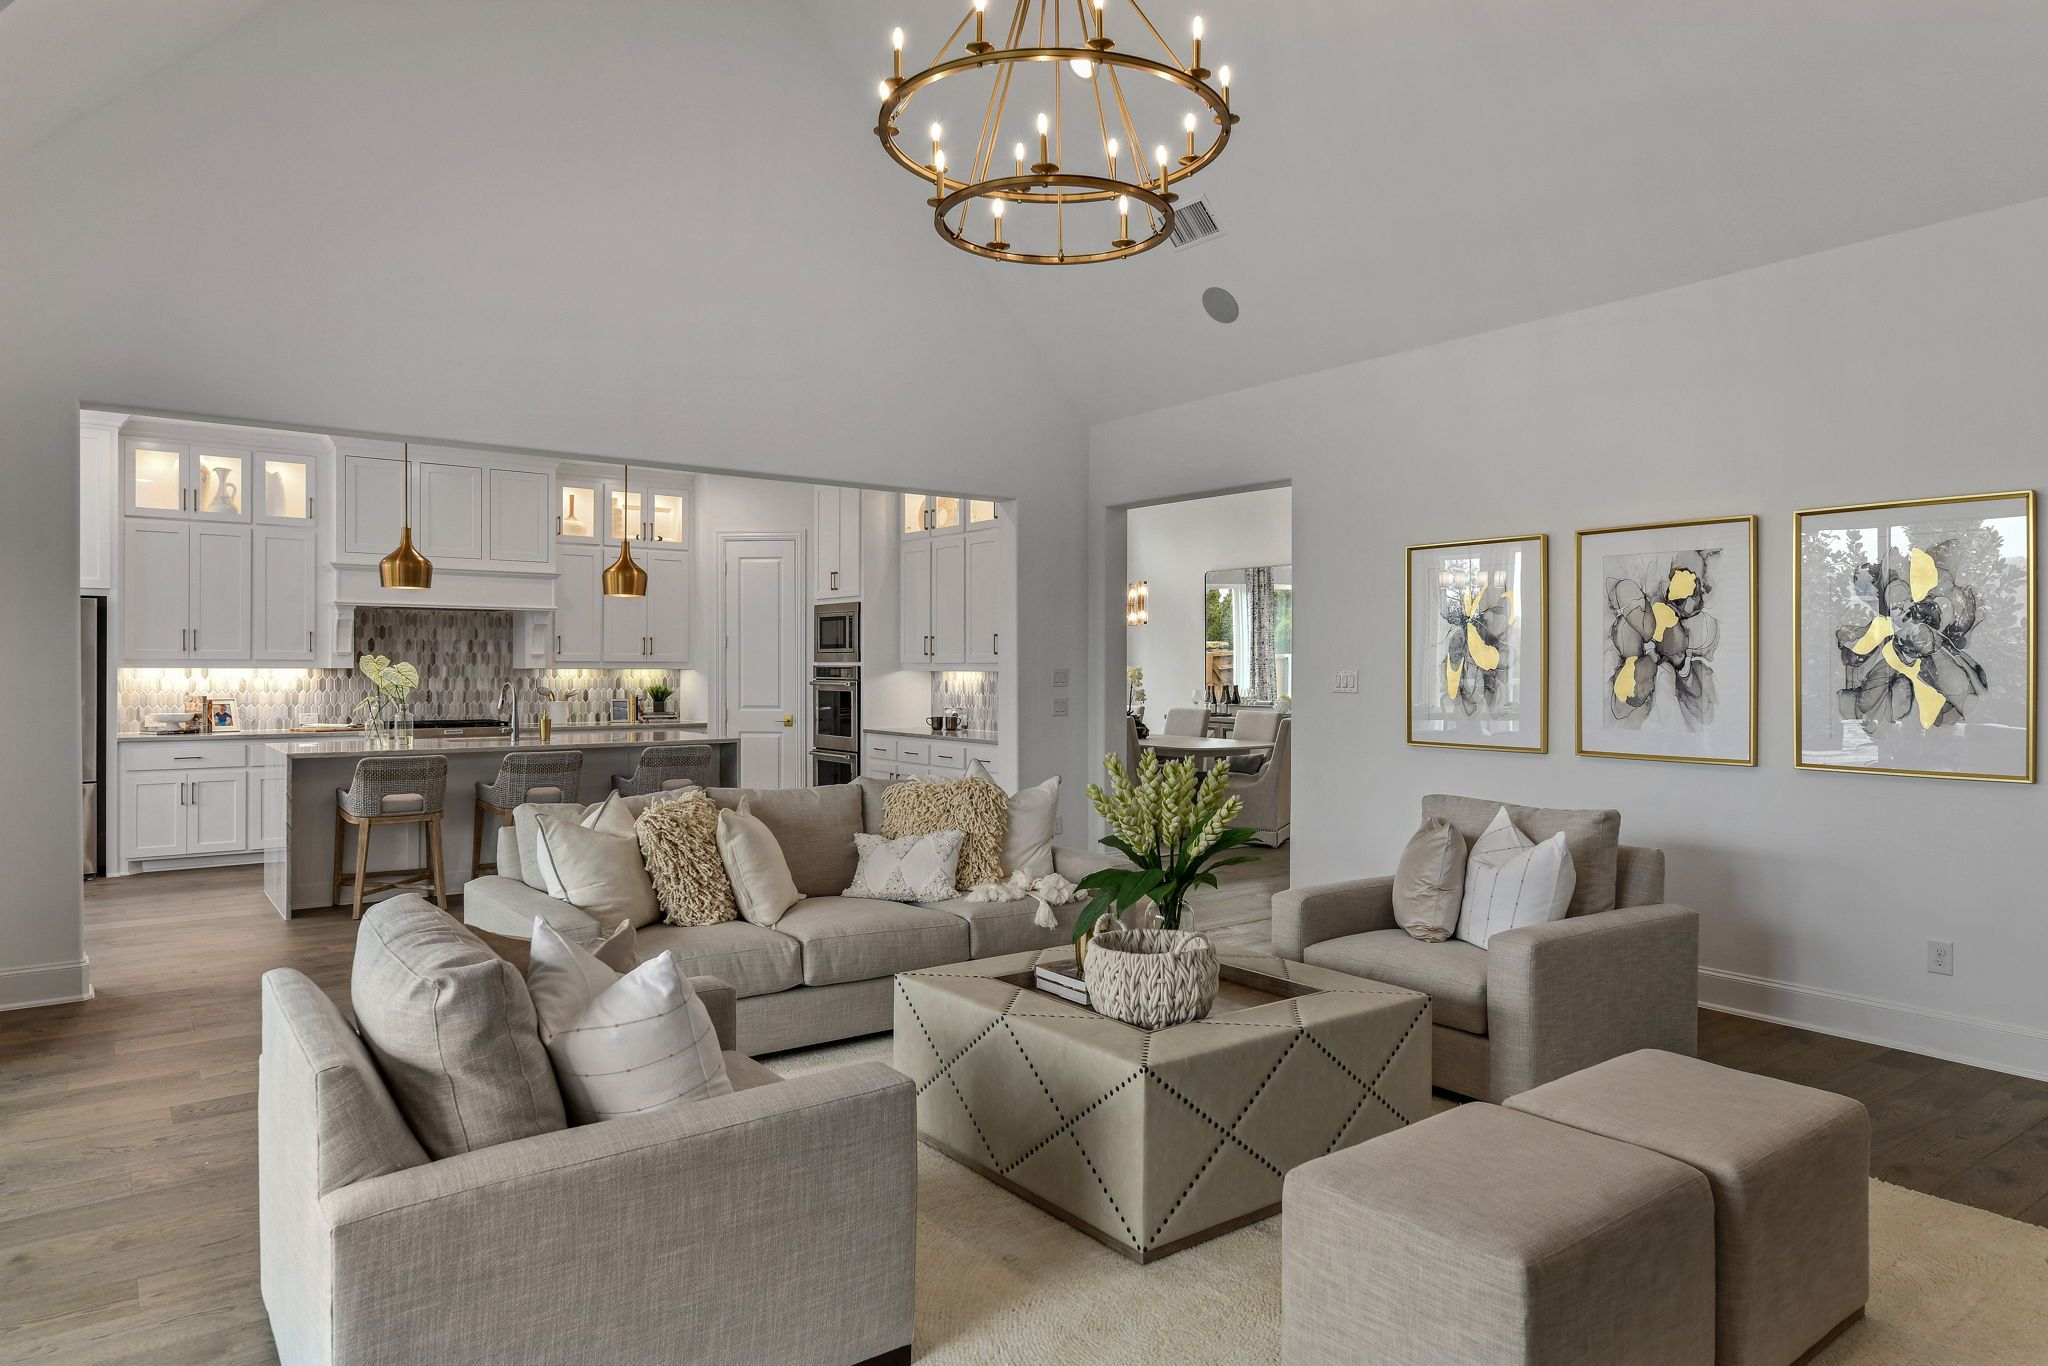 Living Area featured in the B815 By BelclaireHomes in Dallas, TX